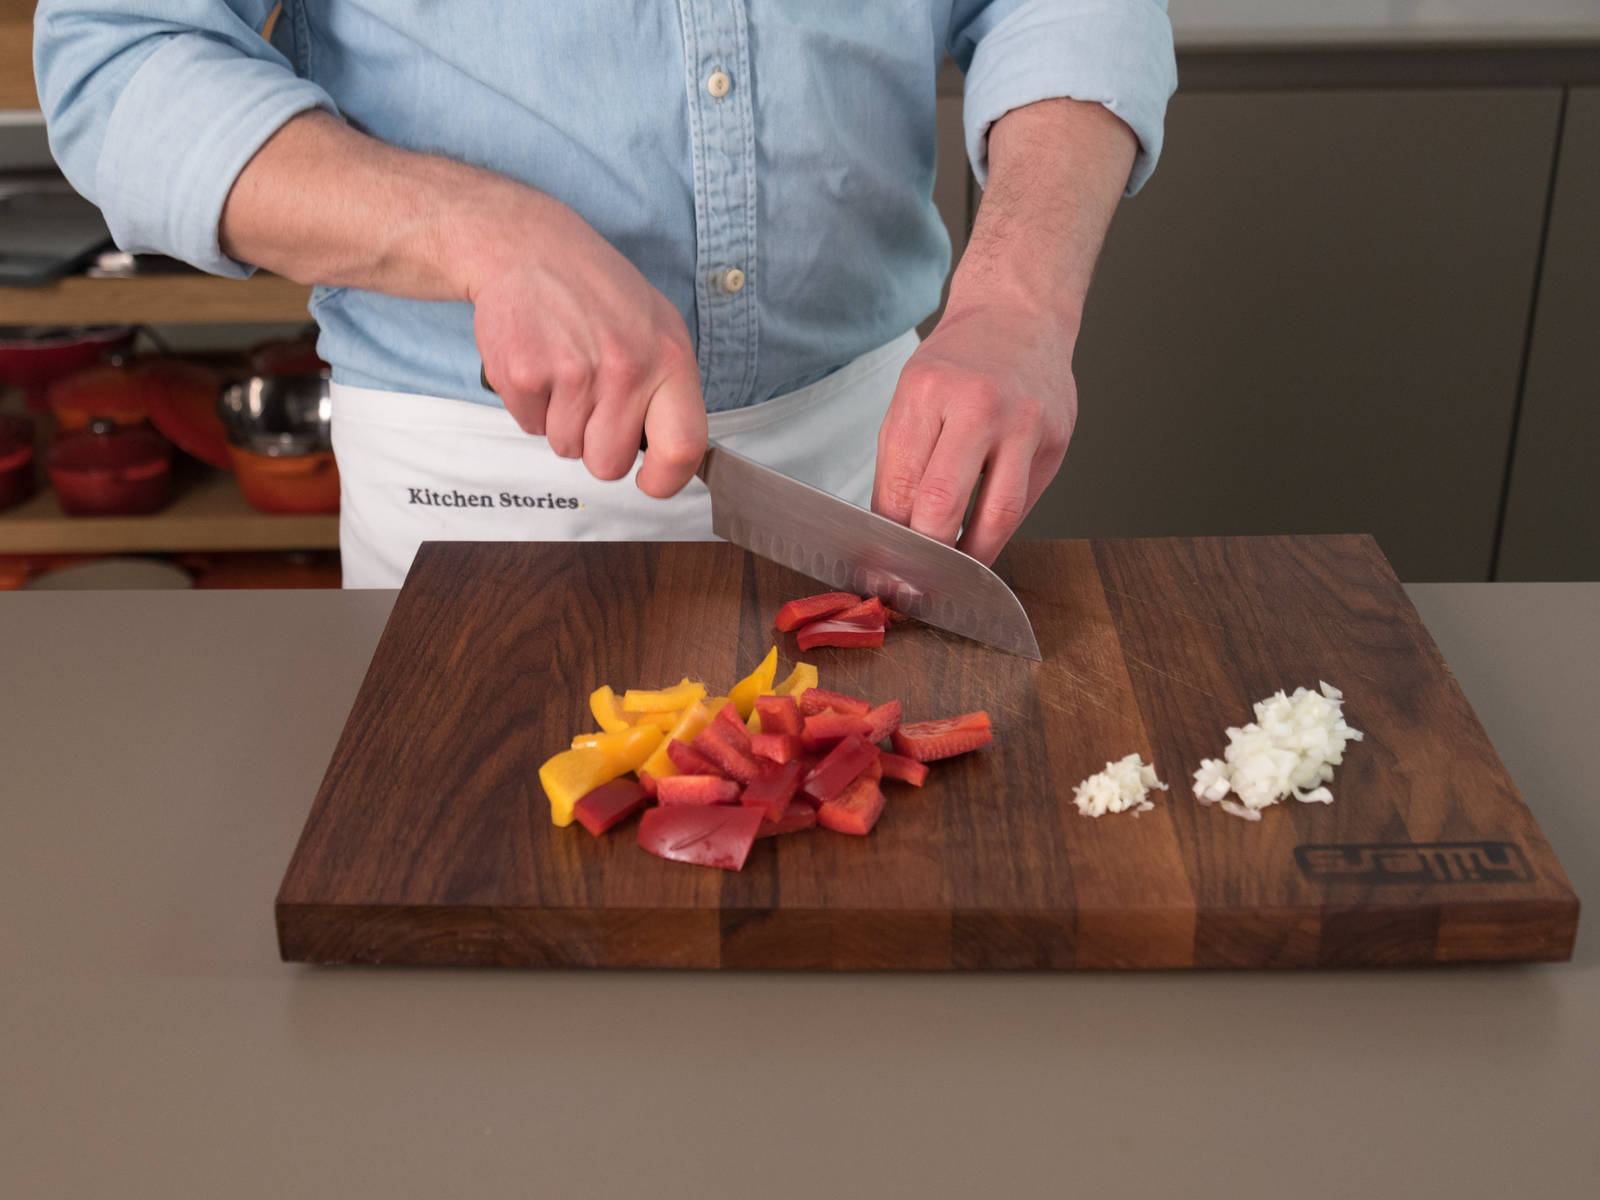 Peel and finely dice onion and garlic. Cut bell pepper into bite-sized pieces. Prepare shrimp and squid.